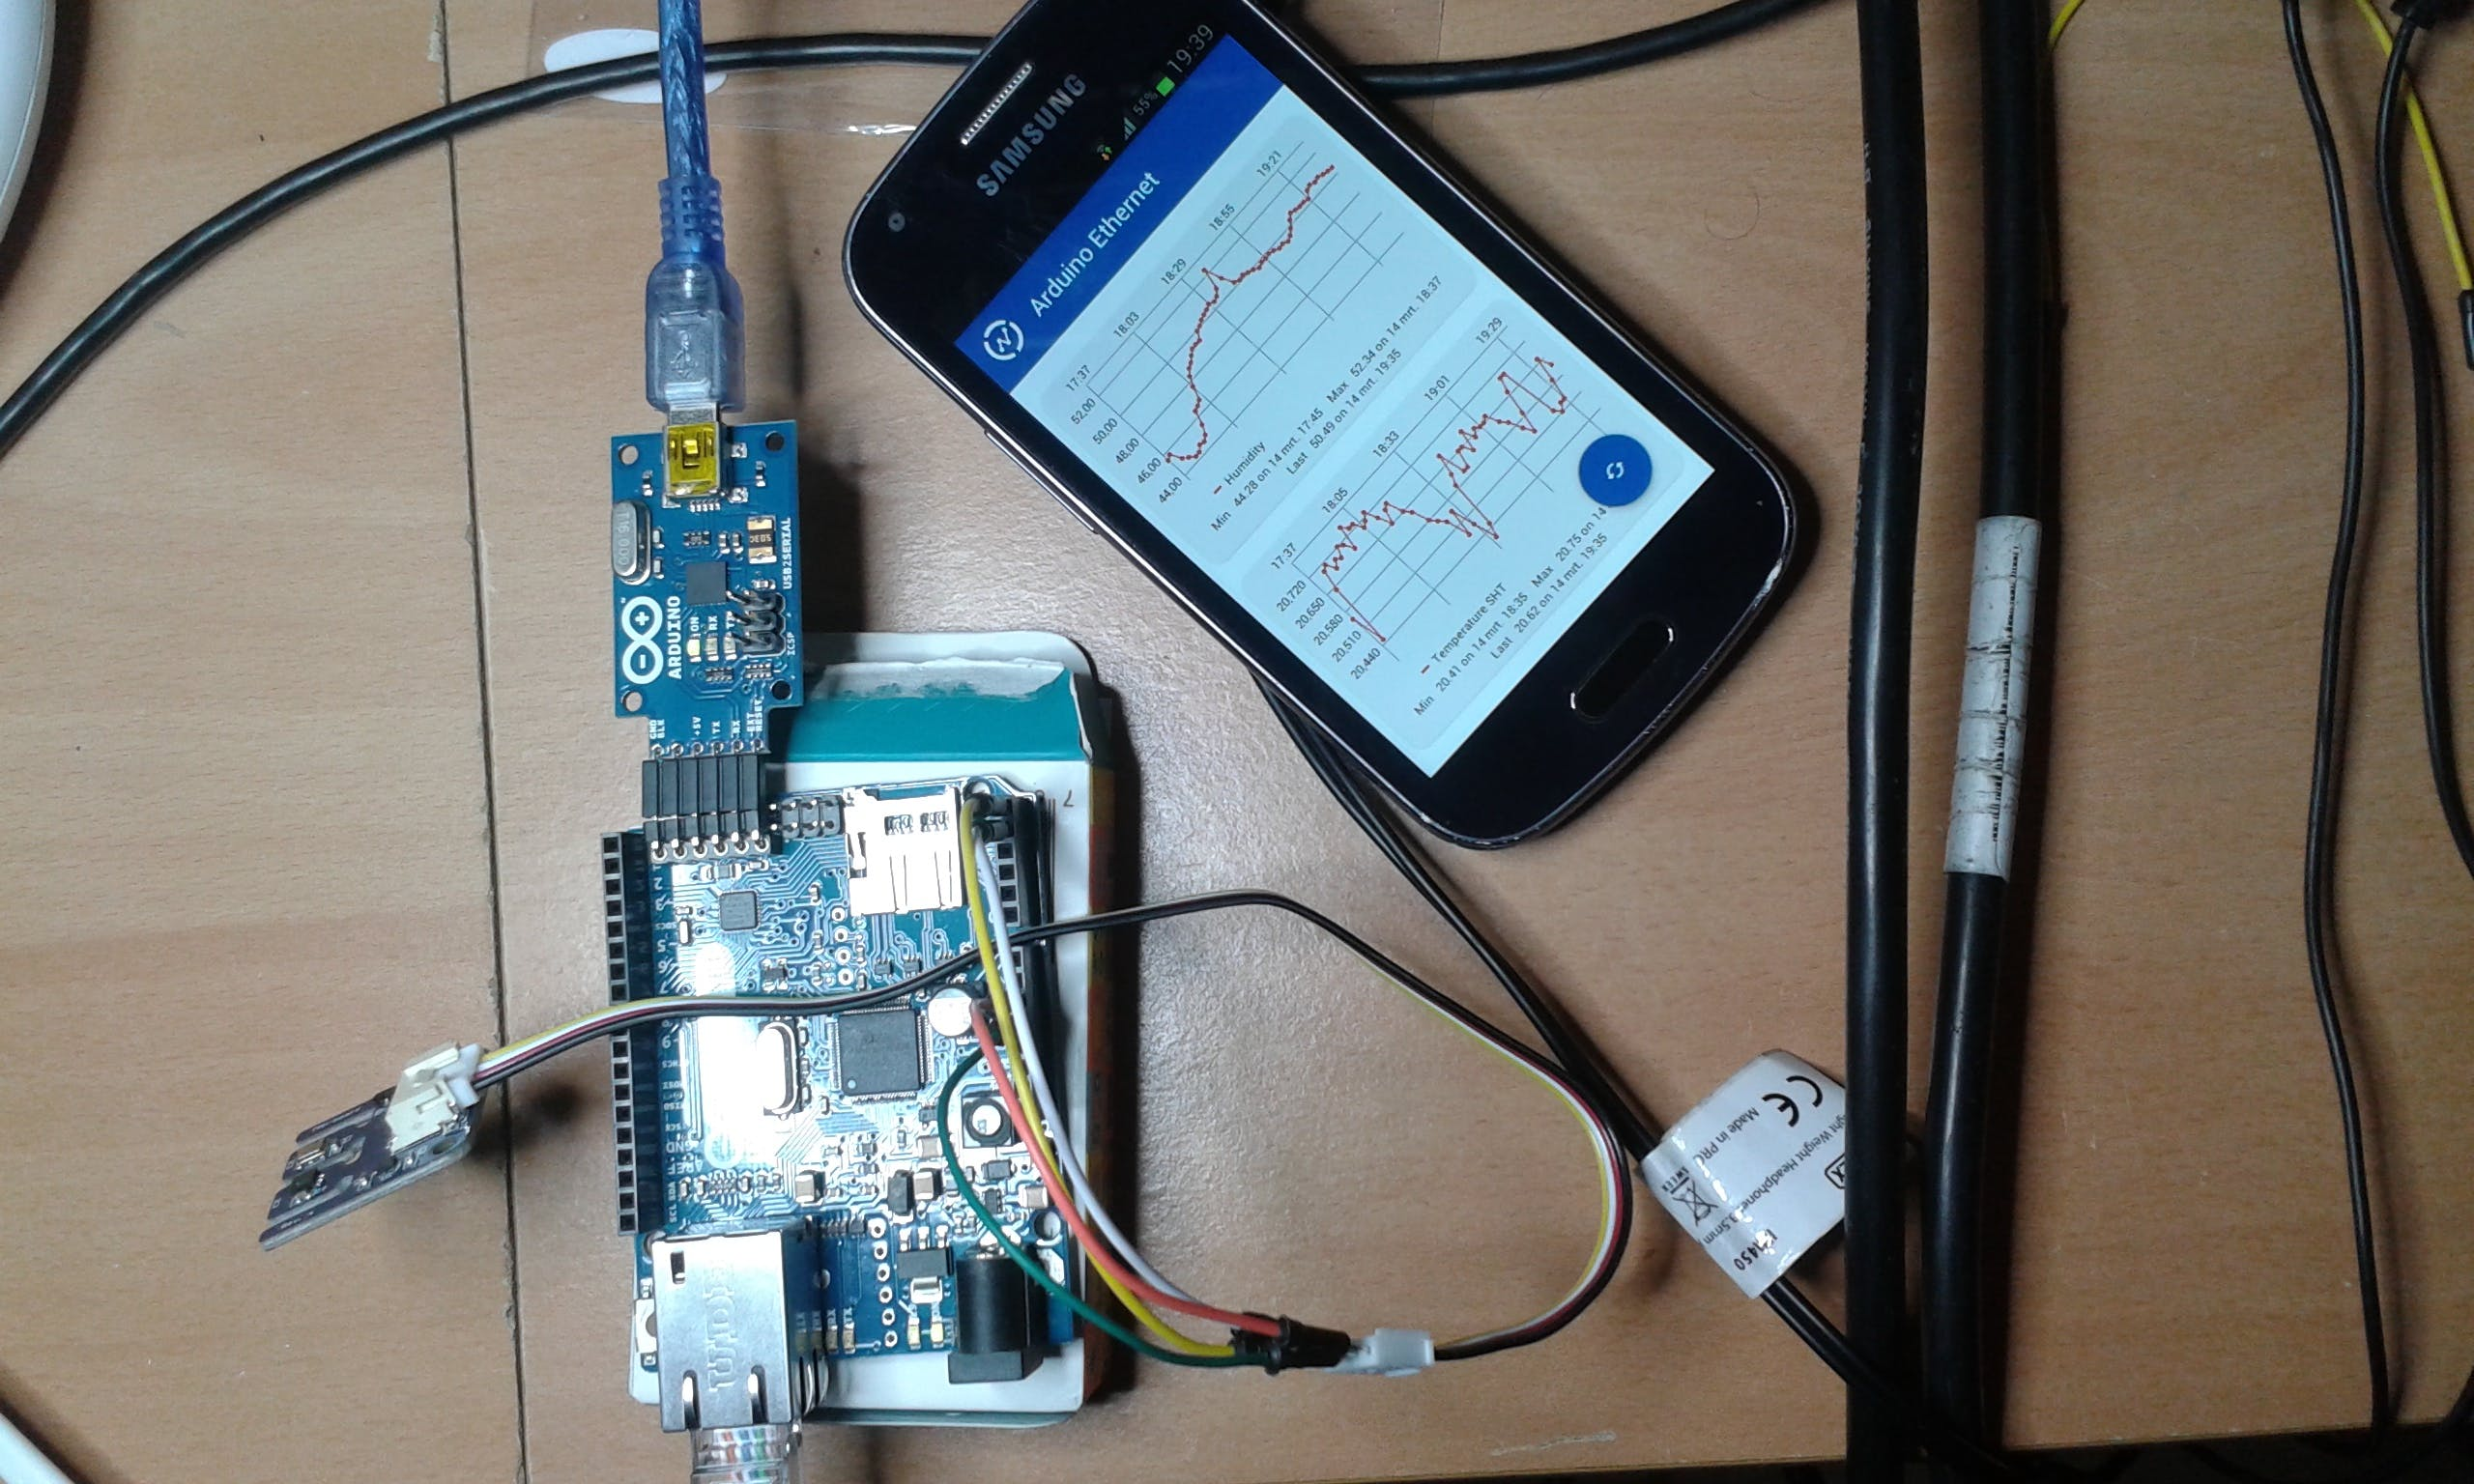 Data can be monitored from the ThingSpeak Android app